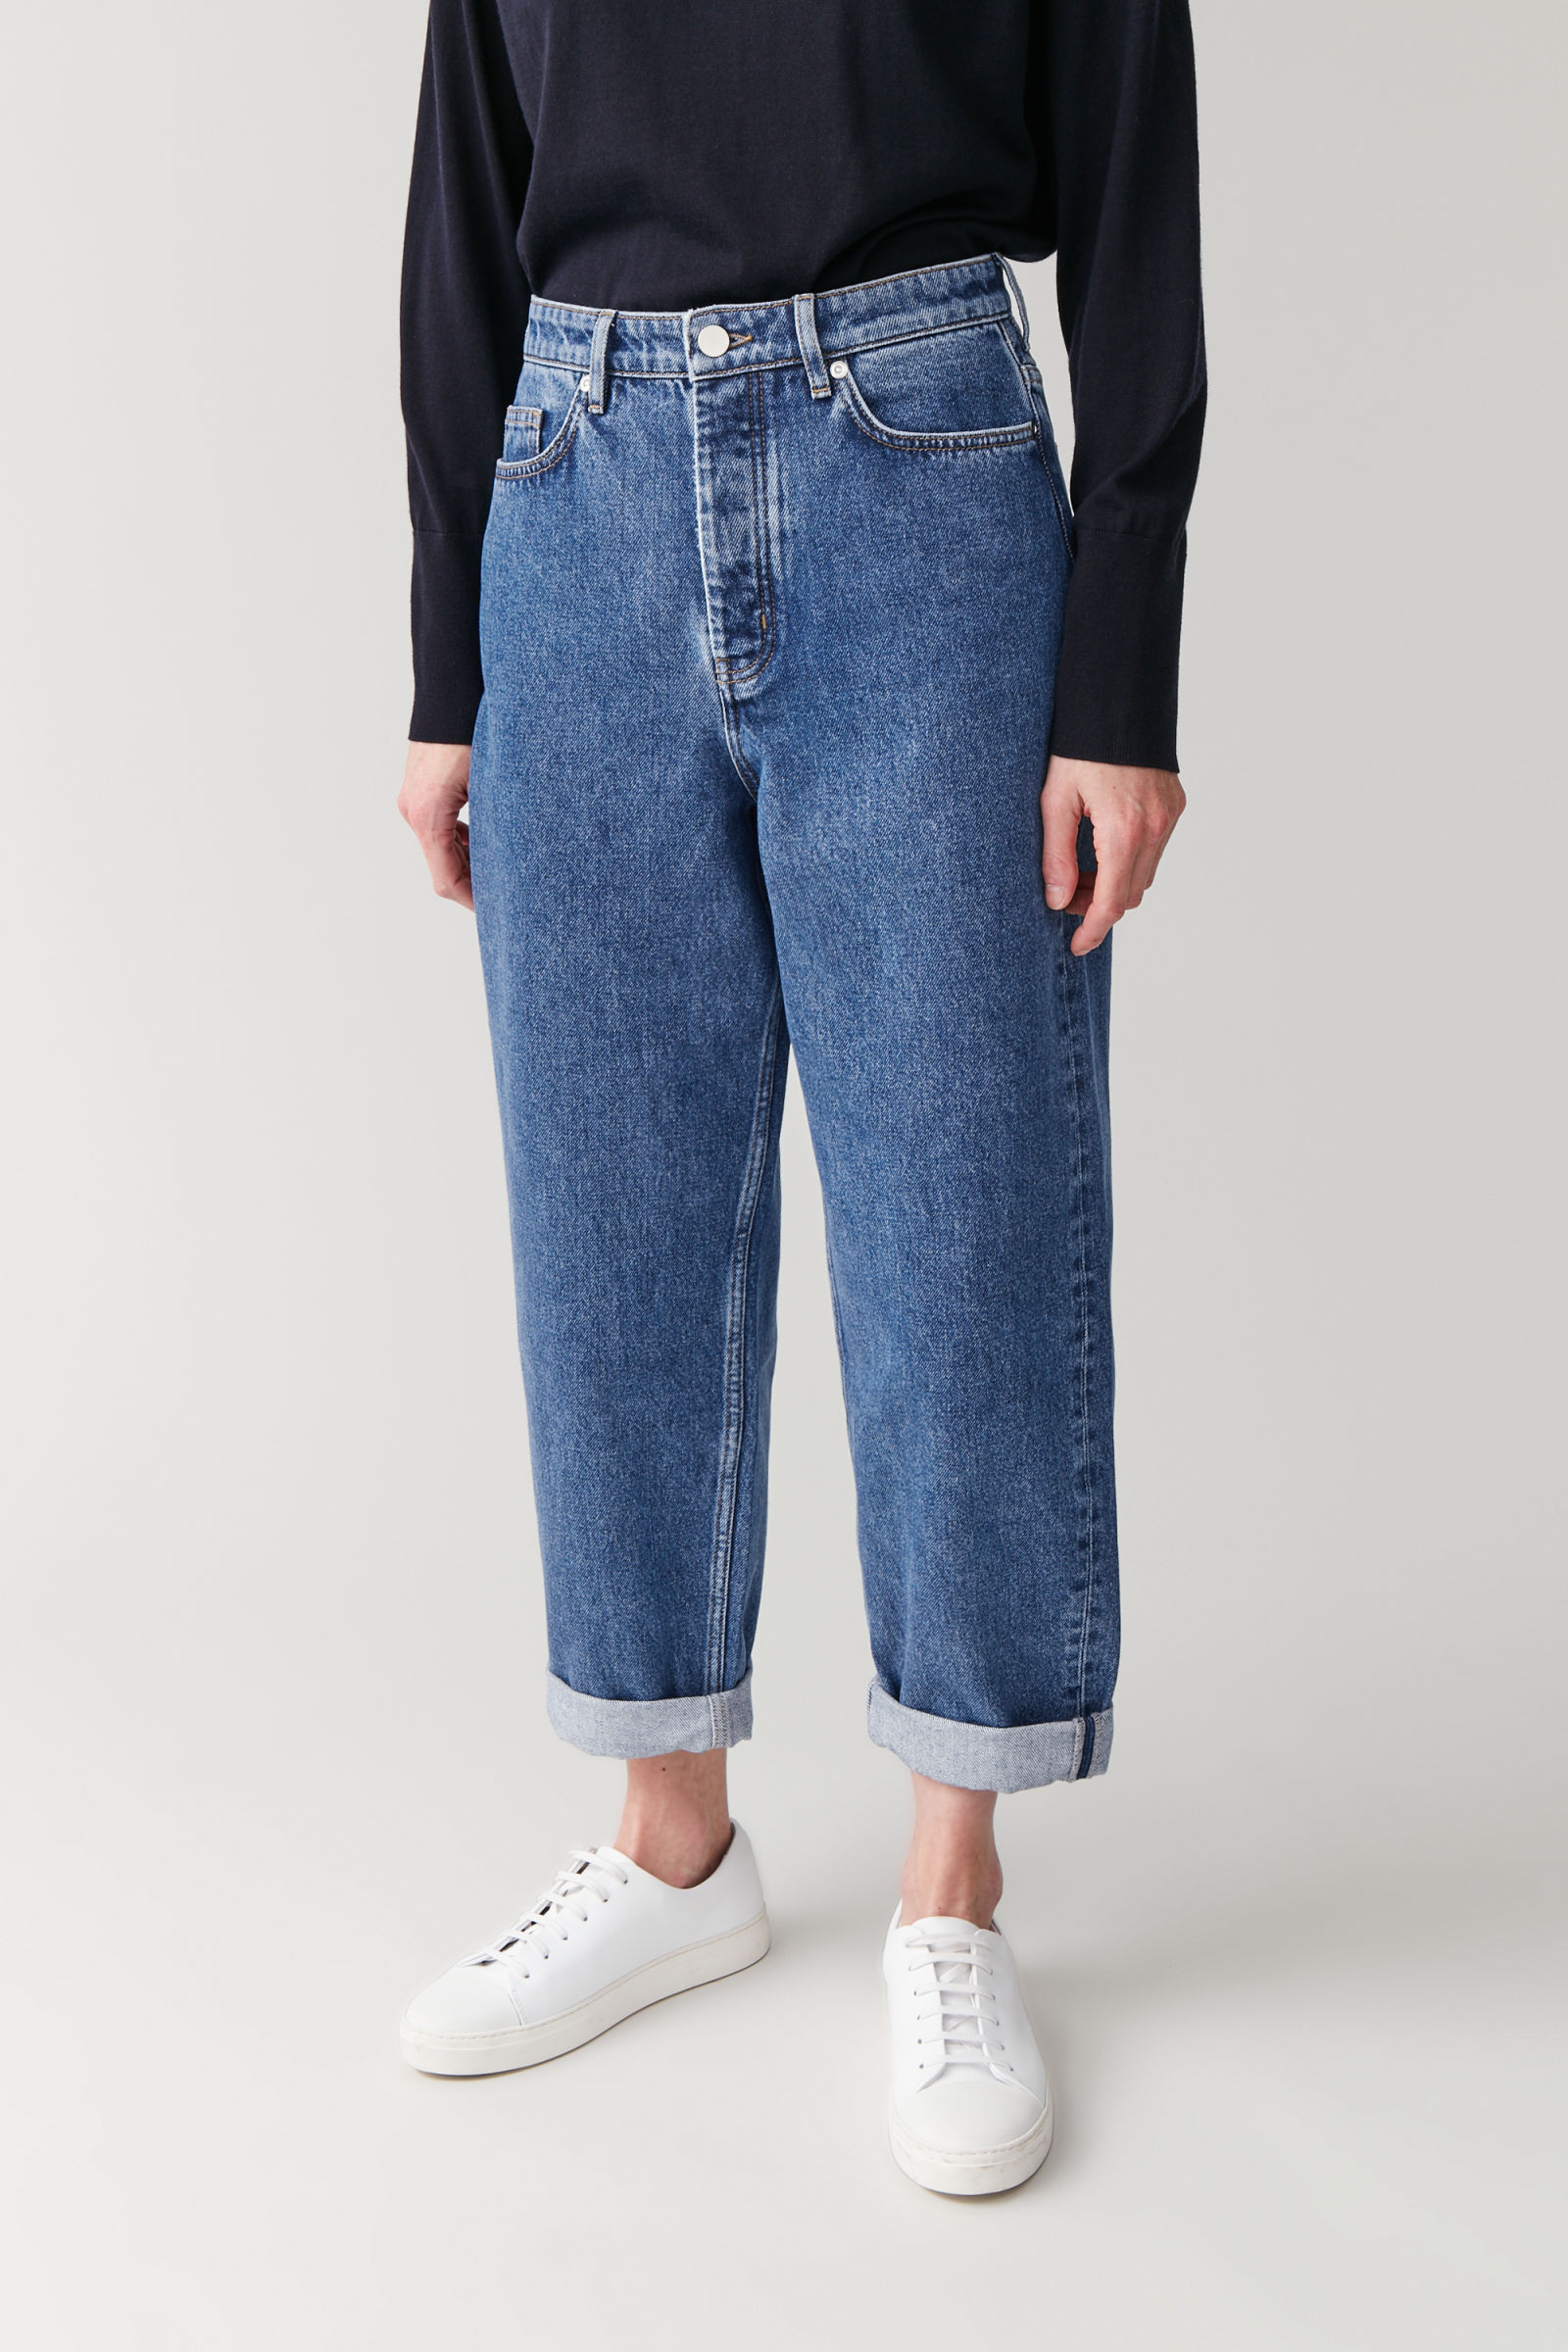 COS HIGH-WAISTED ORGANIC COTTON TAPERED JEANS,blue